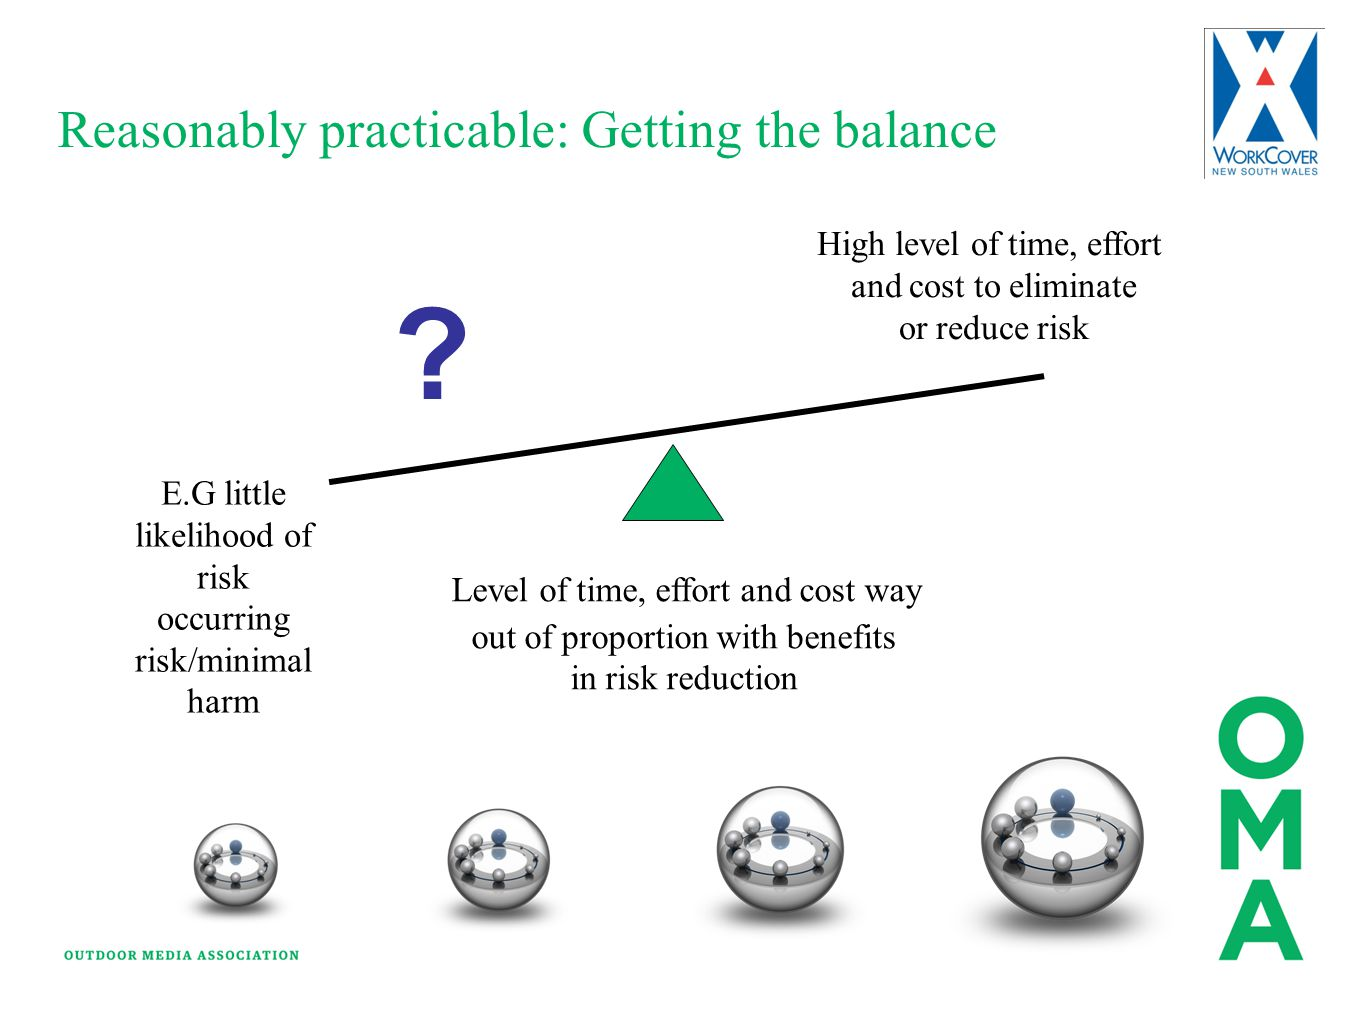 Reasonably practicable: Getting the balance Level of time, effort and cost way out of proportion with benefits in risk reduction E.G little likelihood